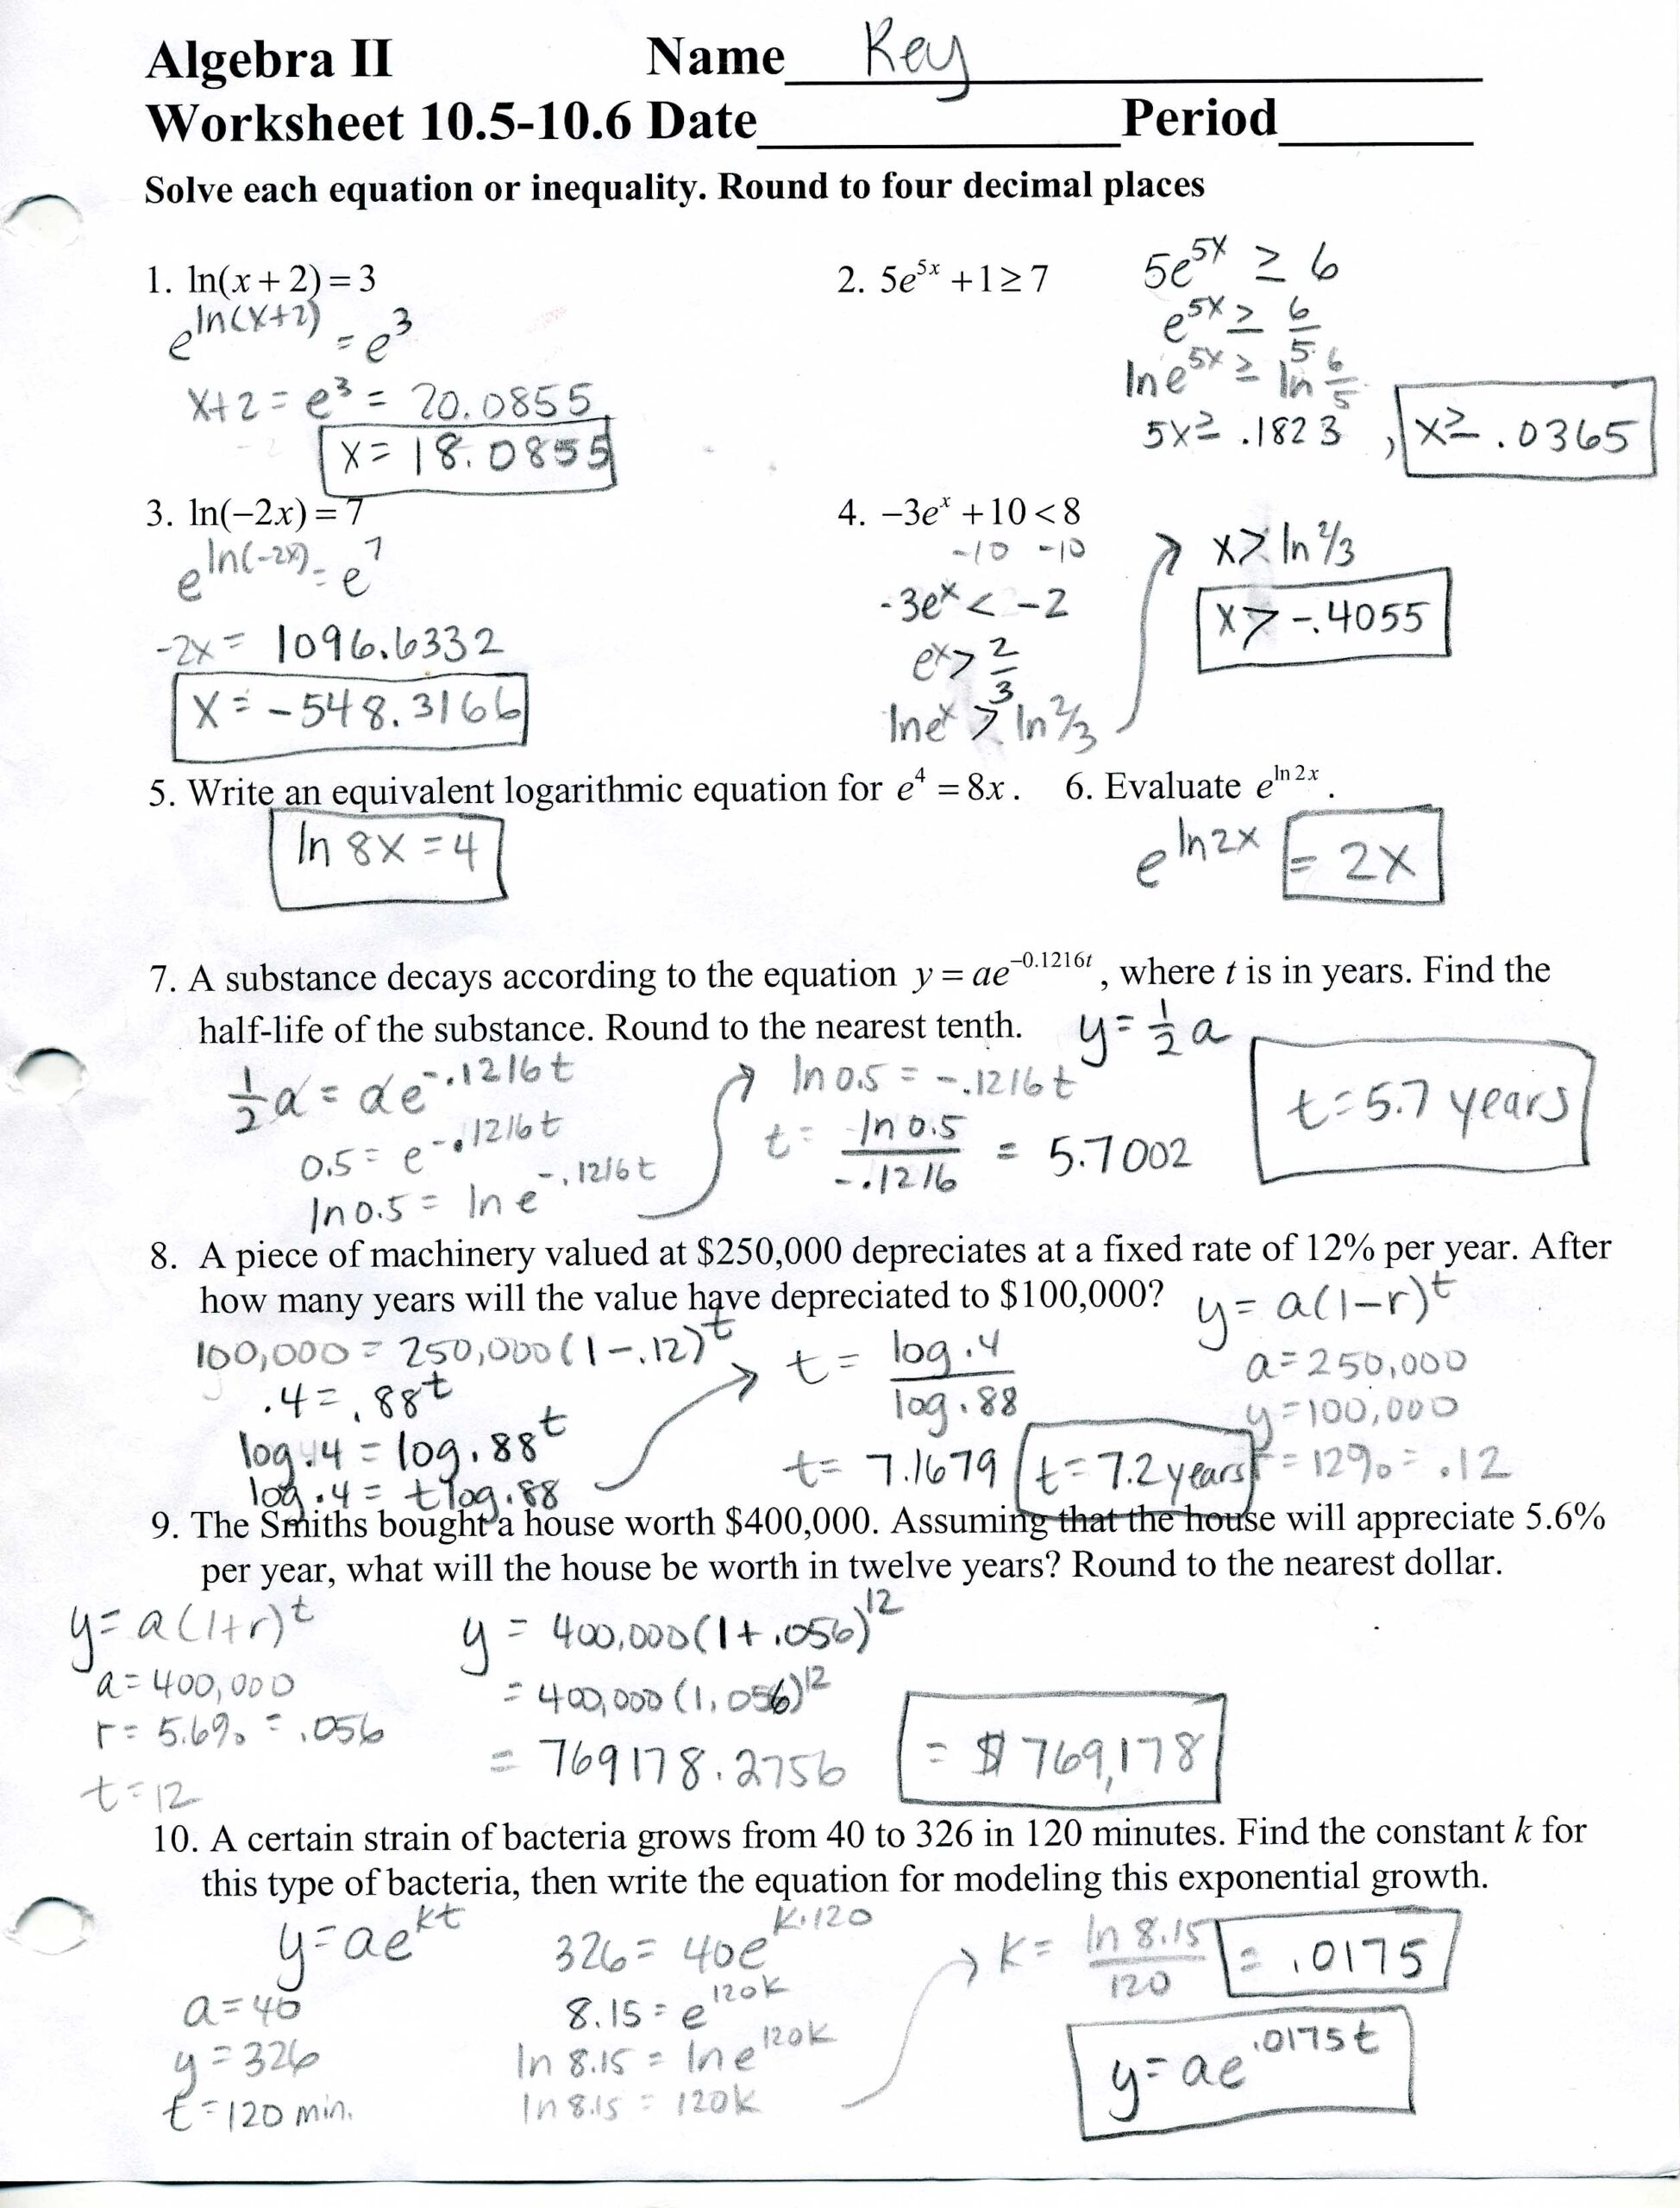 Algebra Worksheets And Answer Key | Algebra Worksheets ...